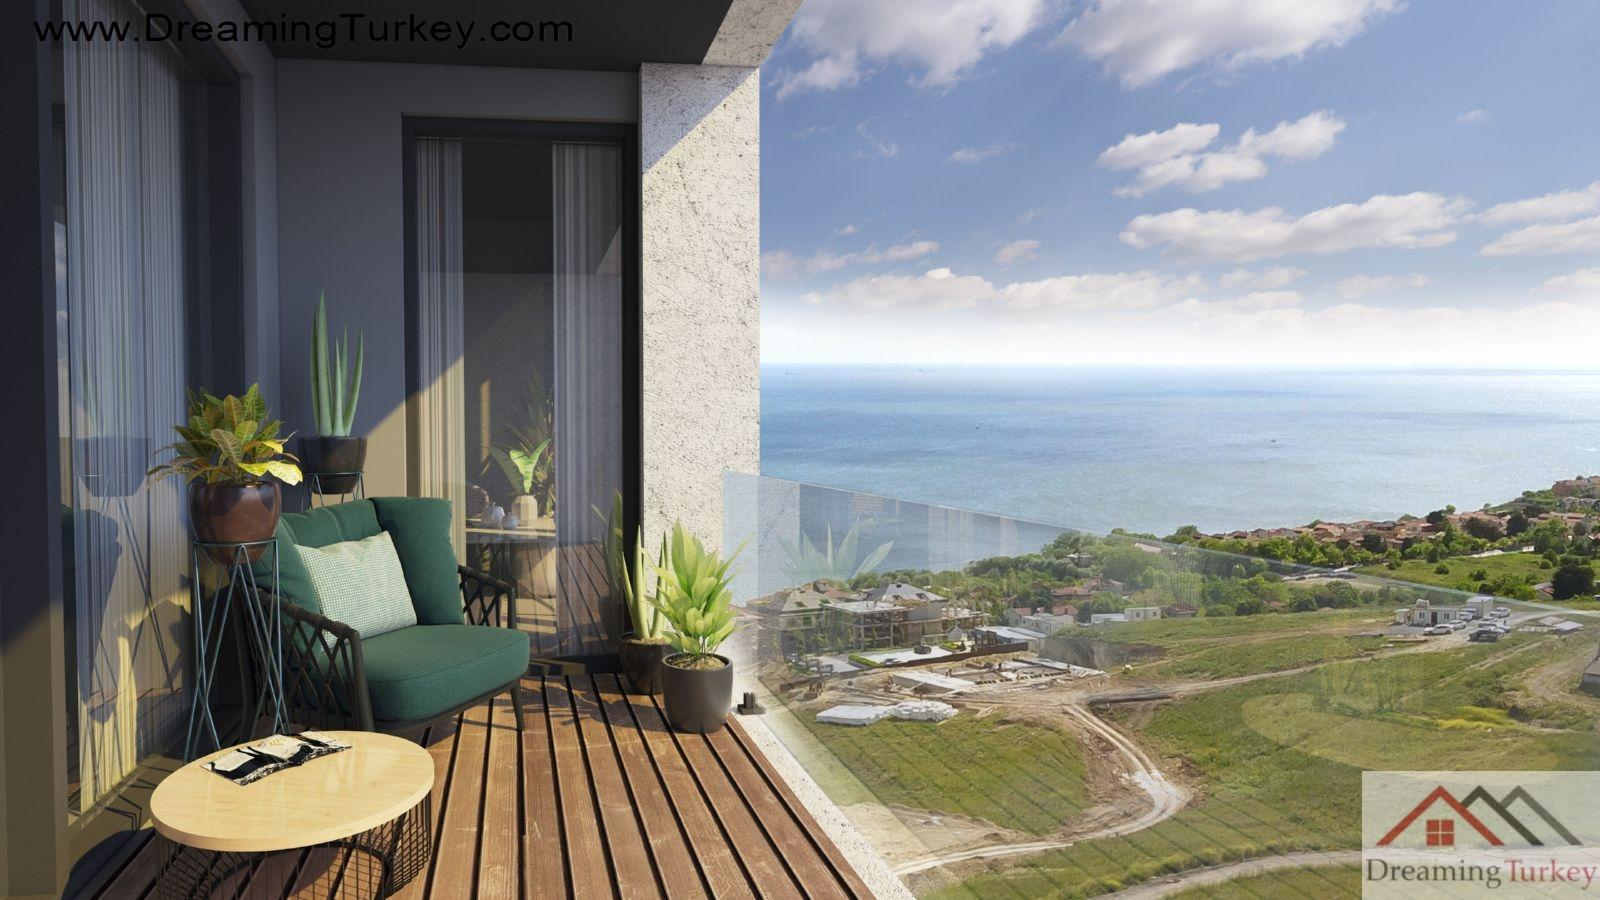 5-Bedroom Duplex with 2 Living Rooms with a Sea View in Istanbul